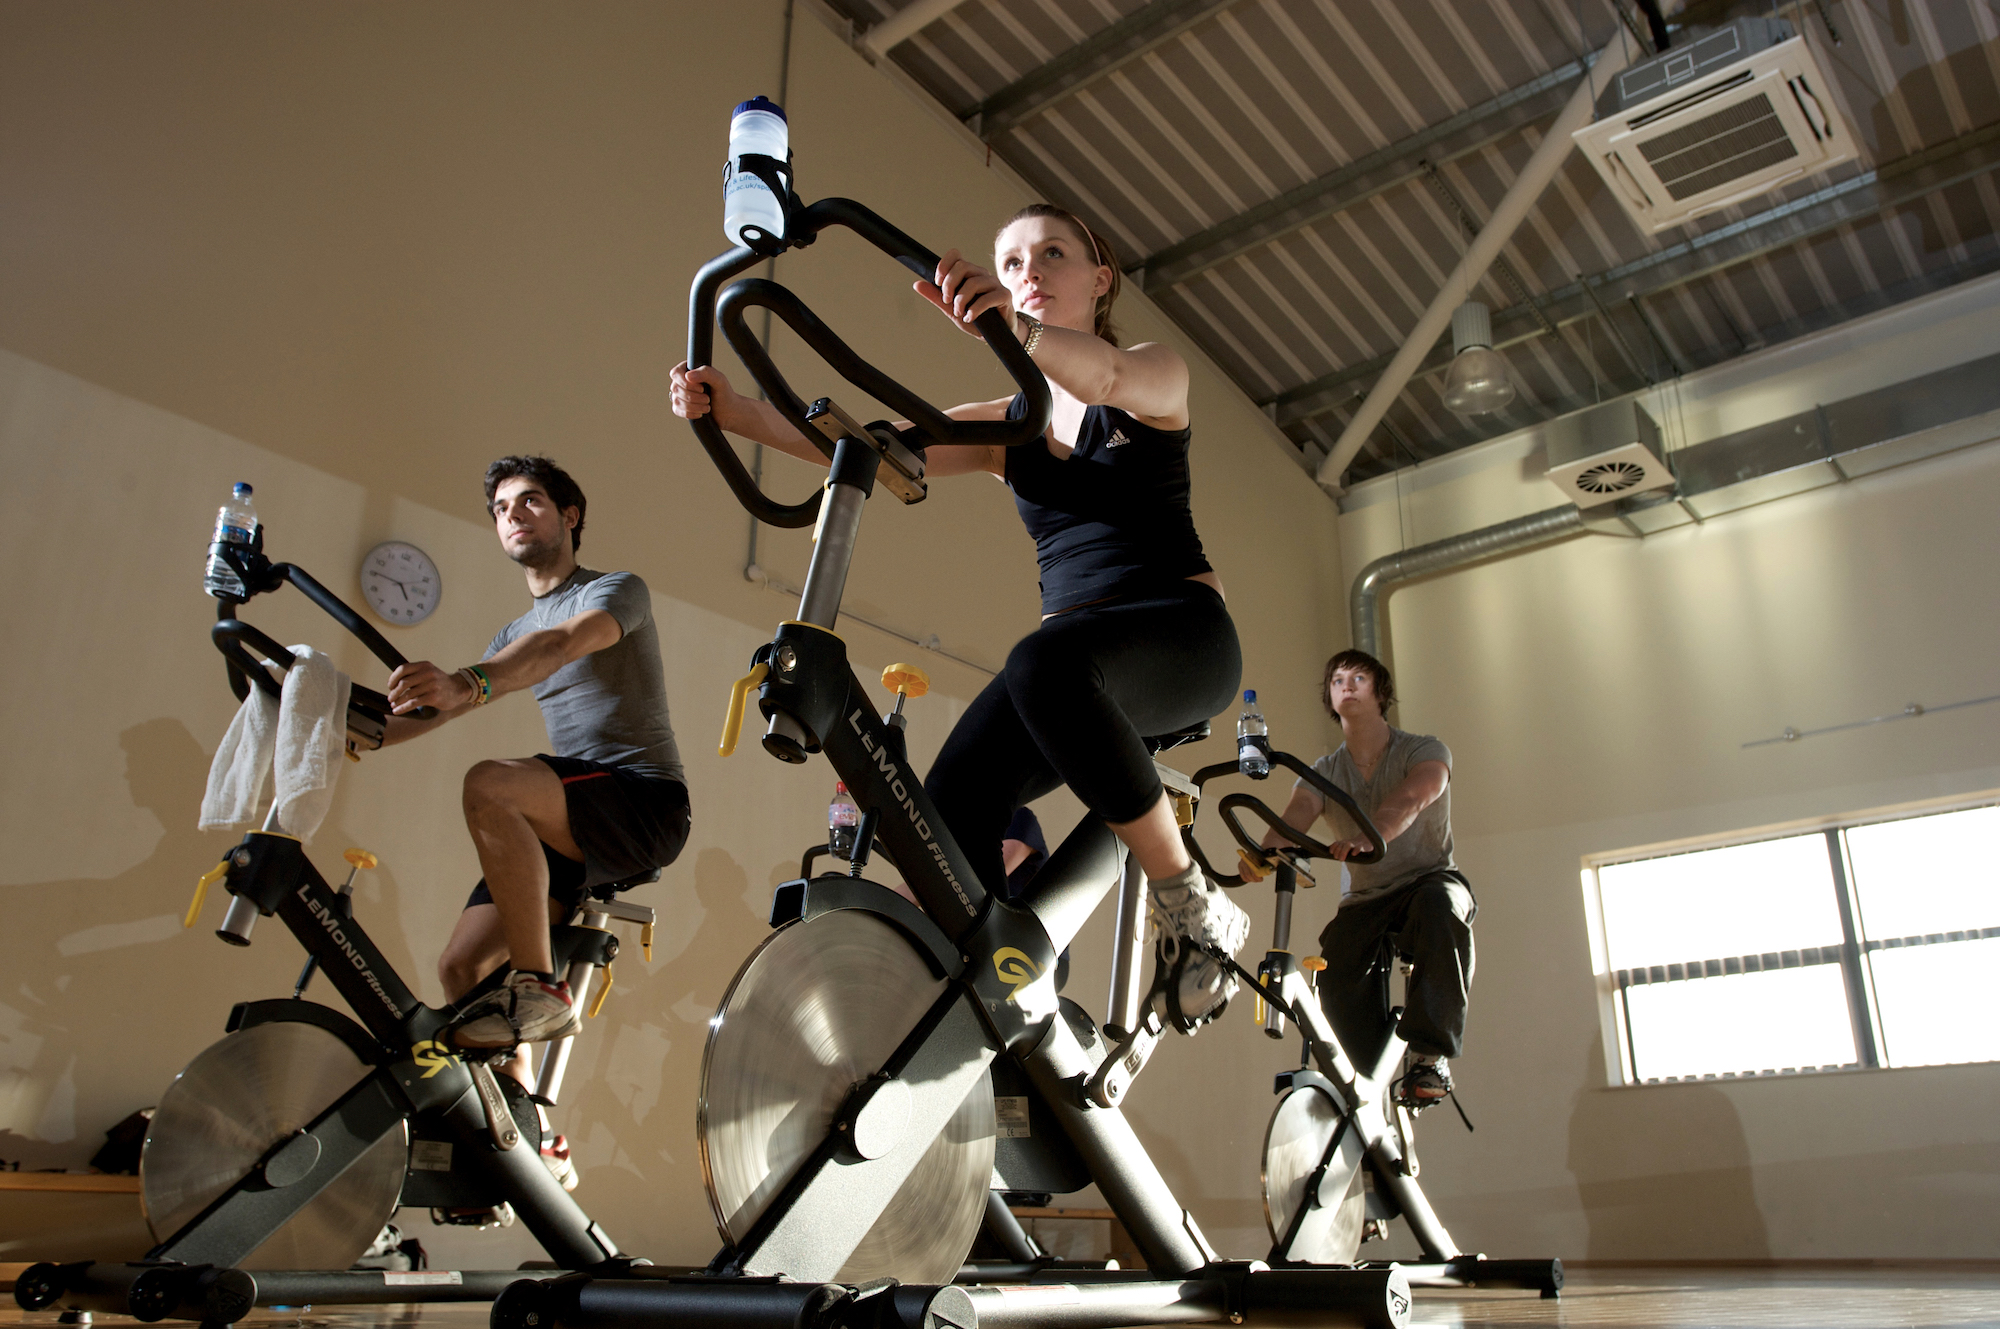 Where to exercise in Paris, and do indoor cycling, like these three people on indoor bikes.